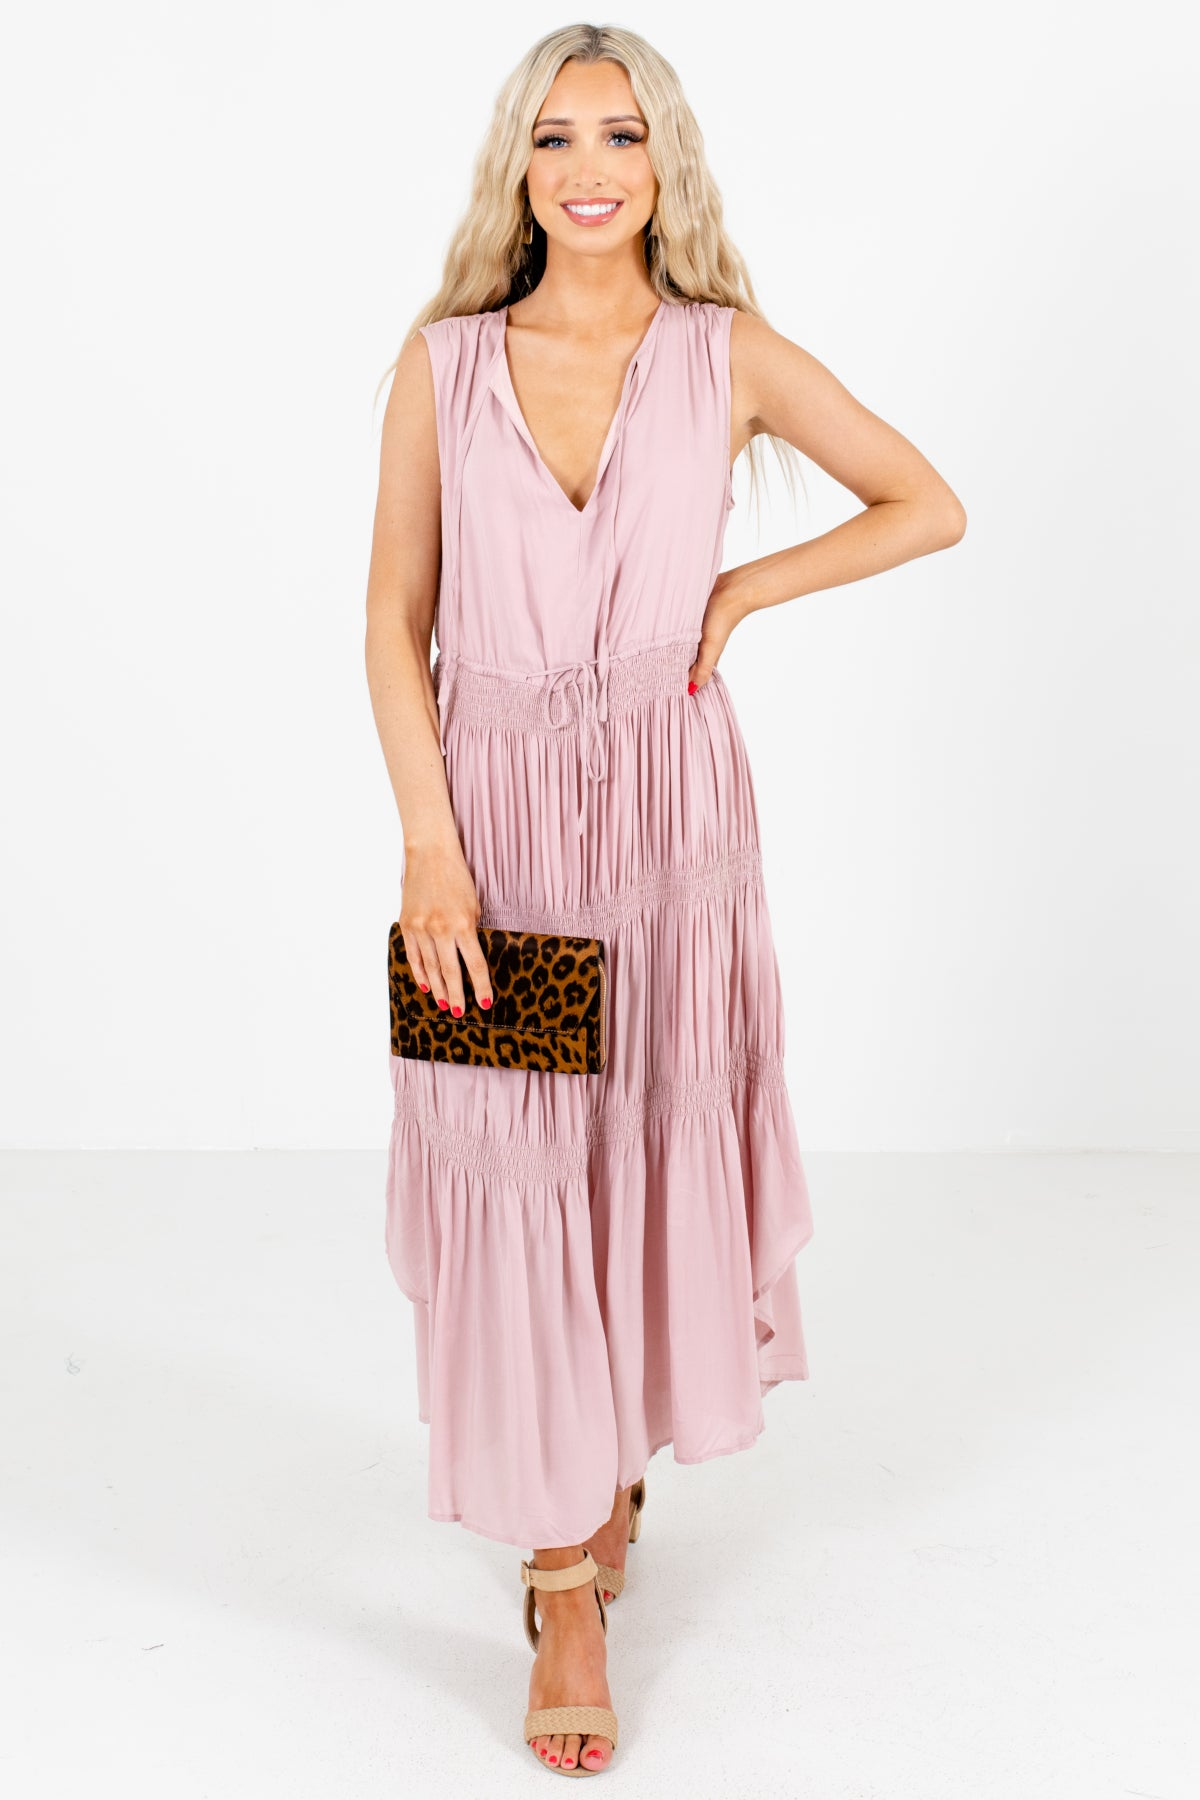 Pink Split V-Neckline Boutique Maxi Dresses for Women